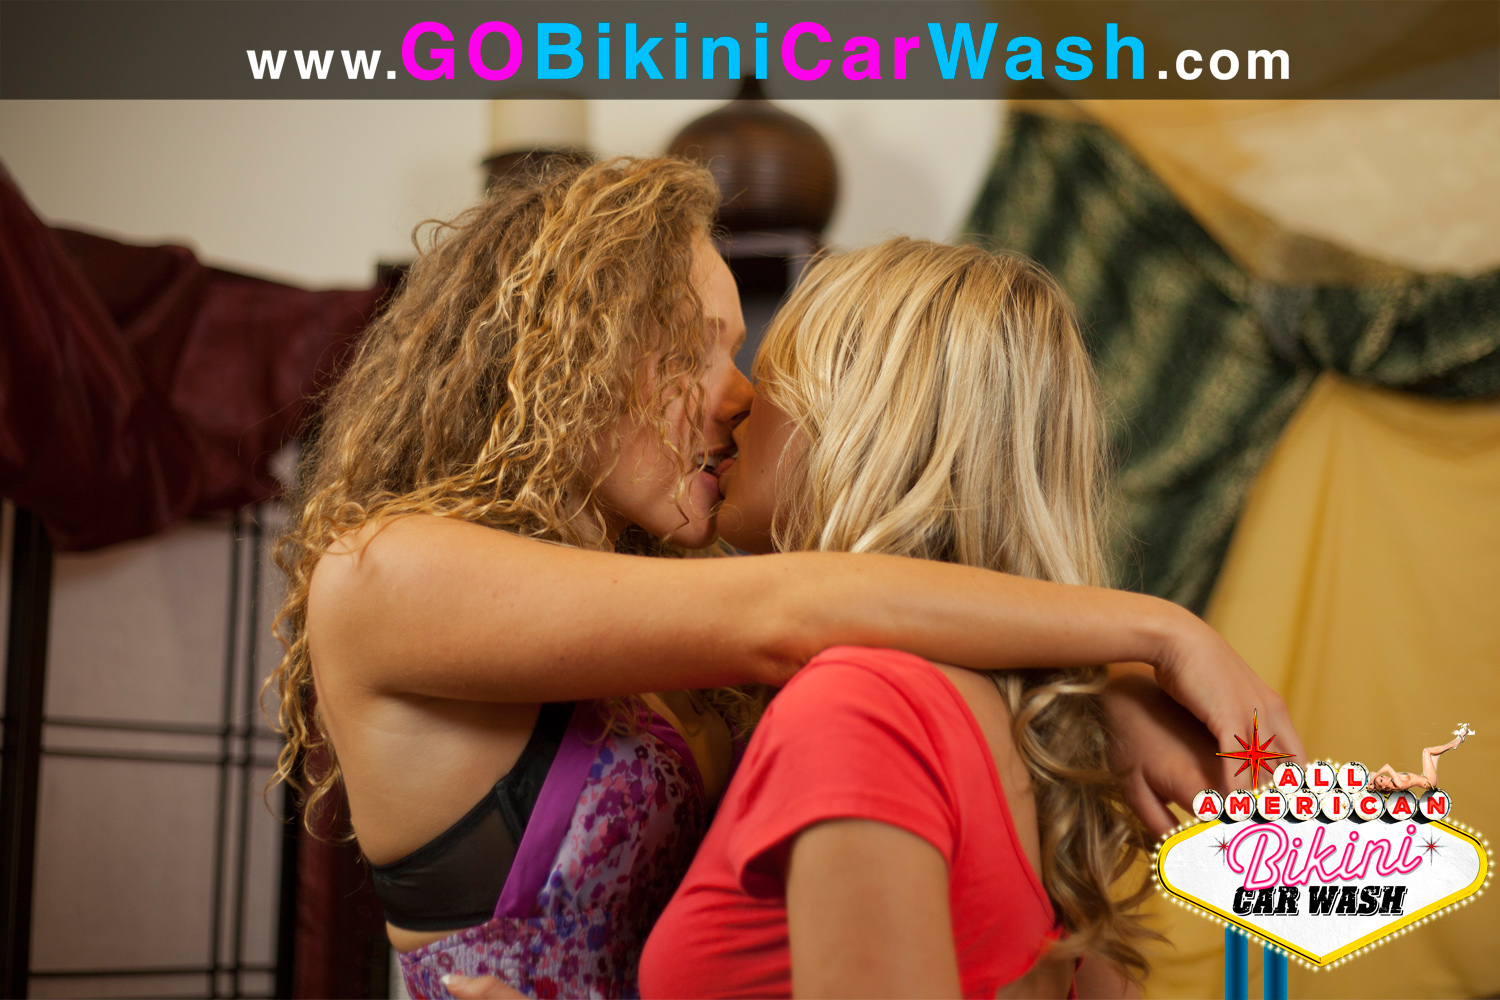 All American Bikini Car Wash Amazon all american bikini car wash, the hottest comedy of 2016, is